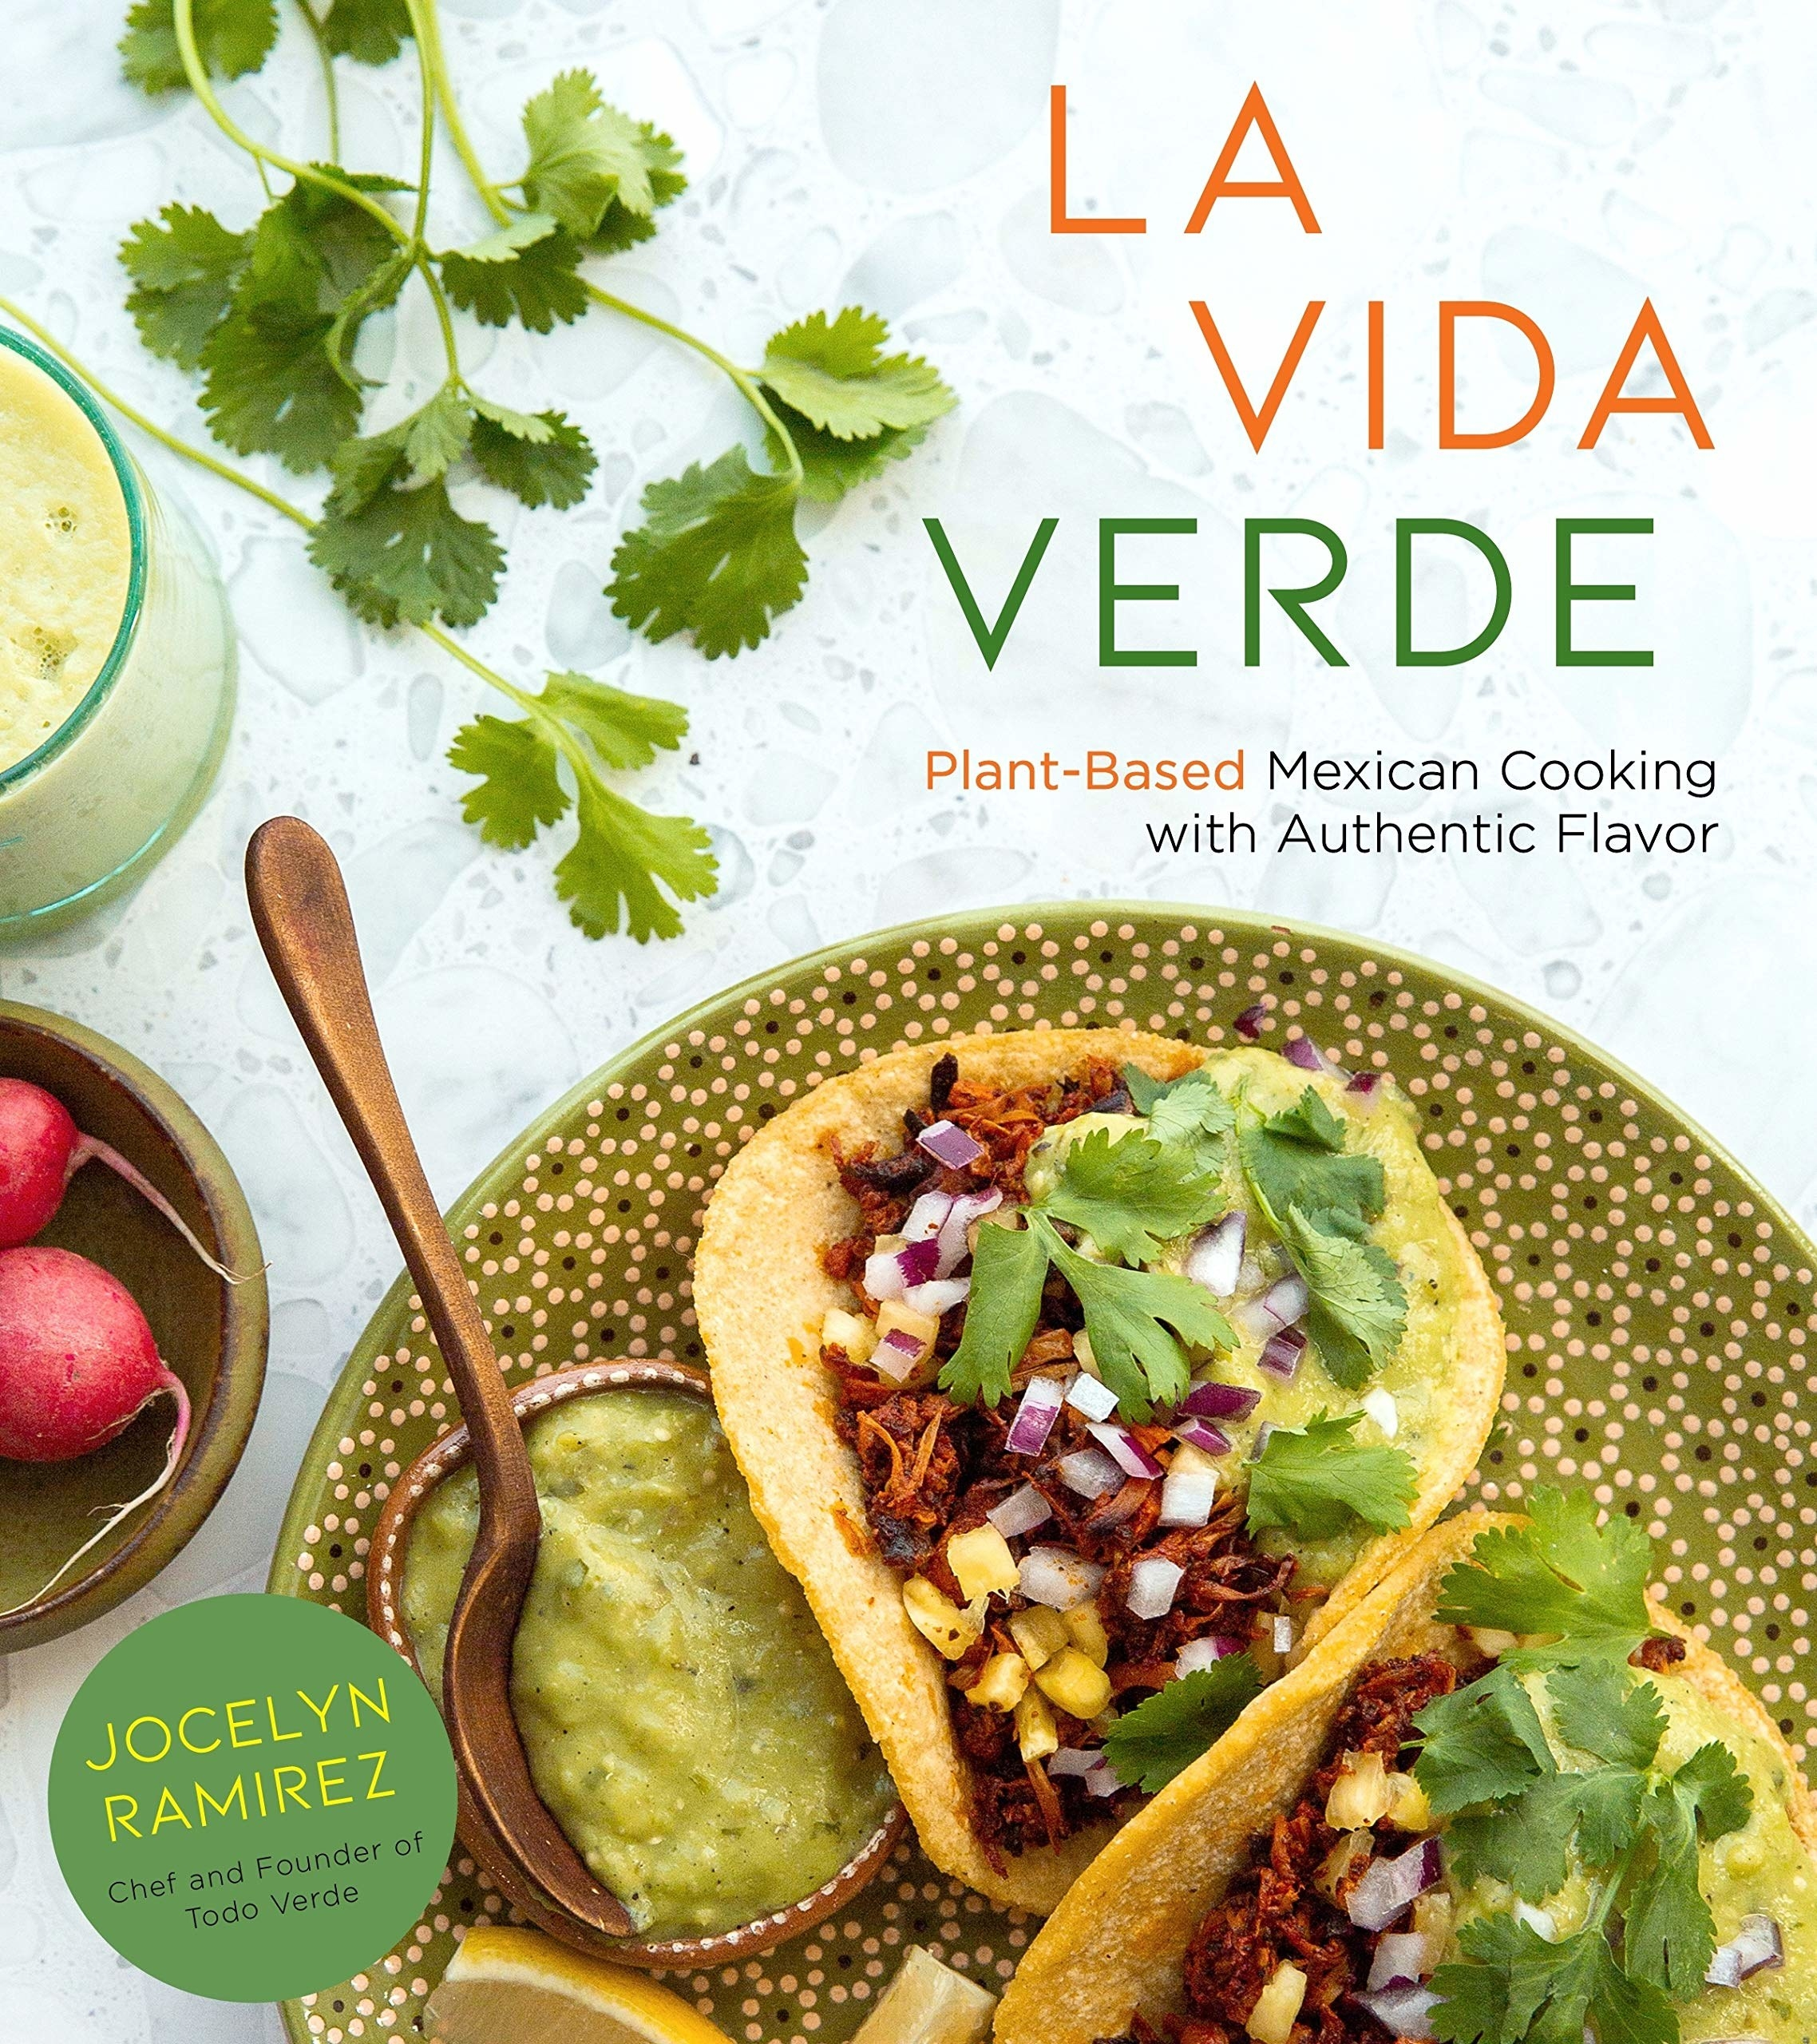 The book cover with jackfruit tacos on the cover